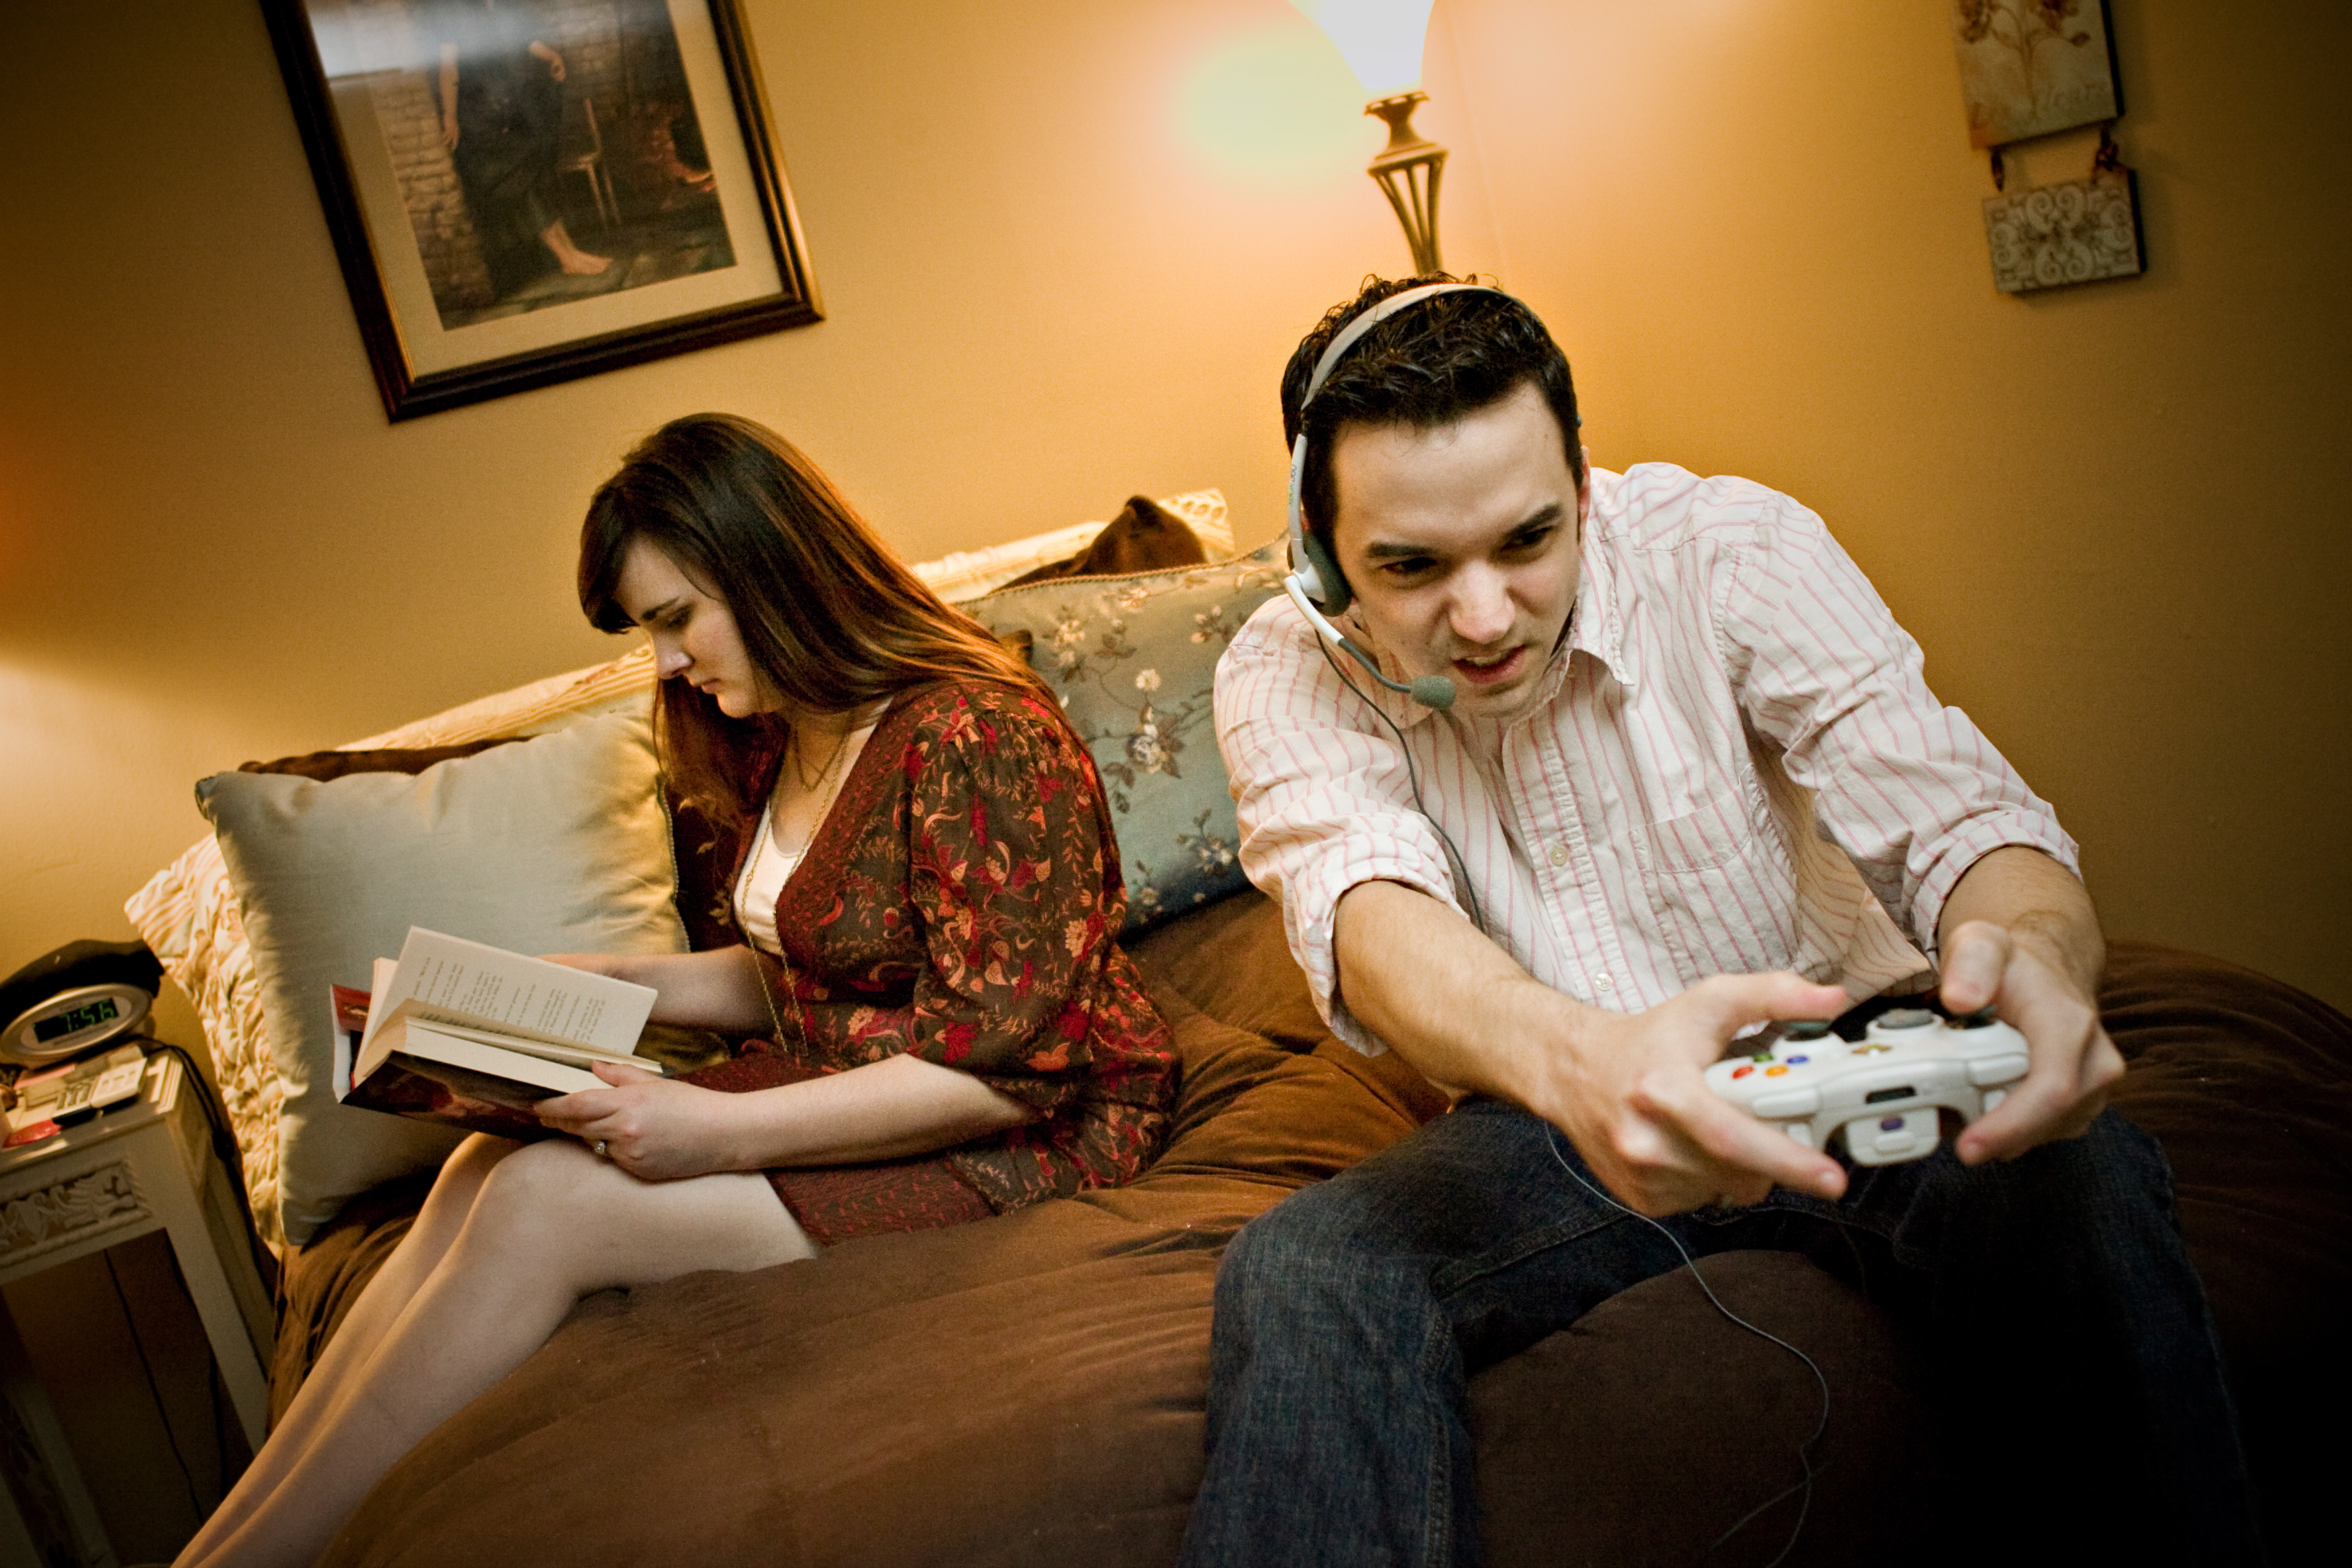 Engagement photo, Video games